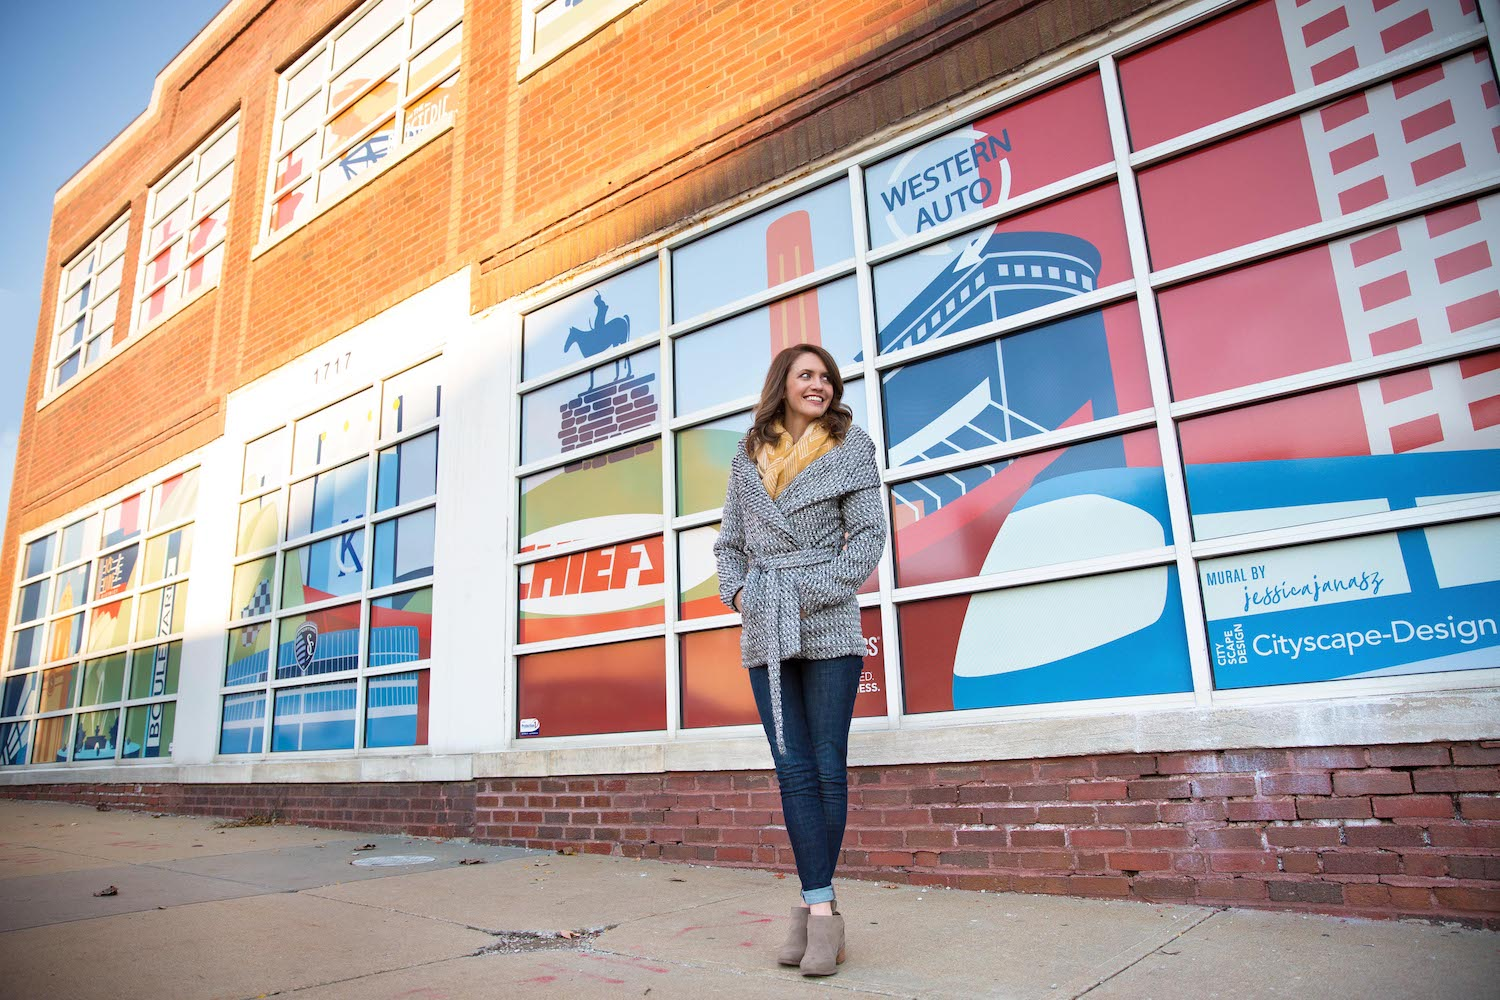 kansas city mural cityscape design